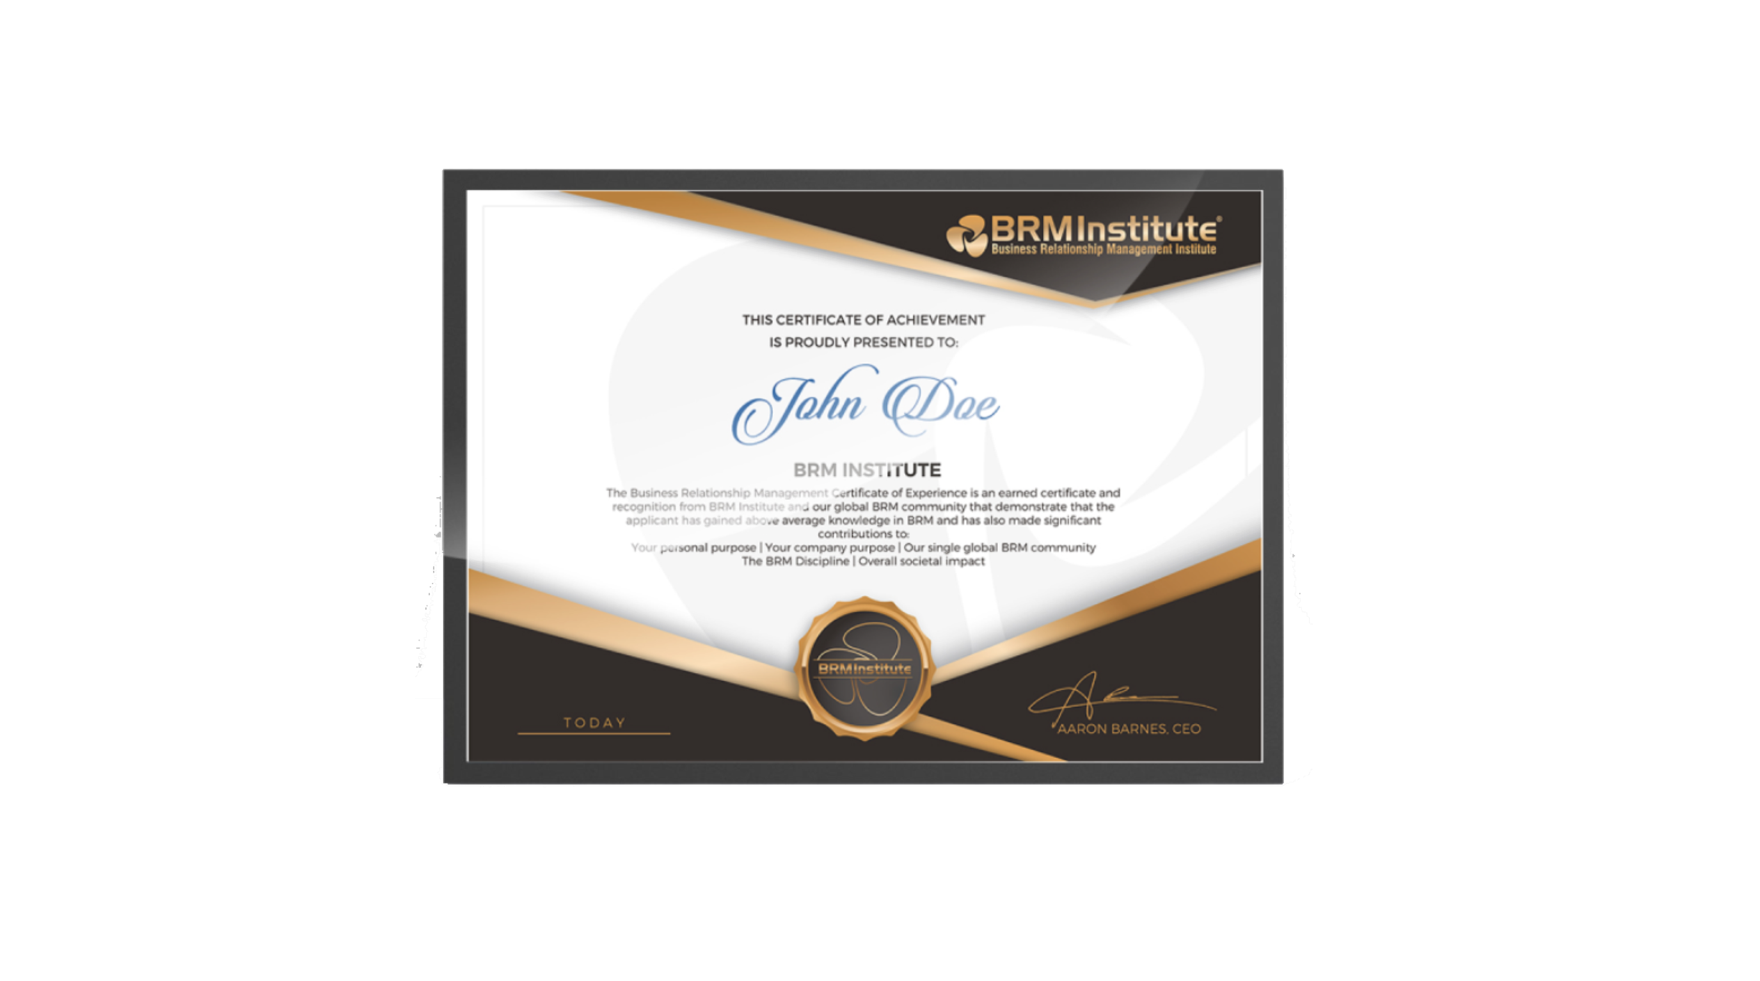 Business Relationship Management Certificate Of Experience Brm